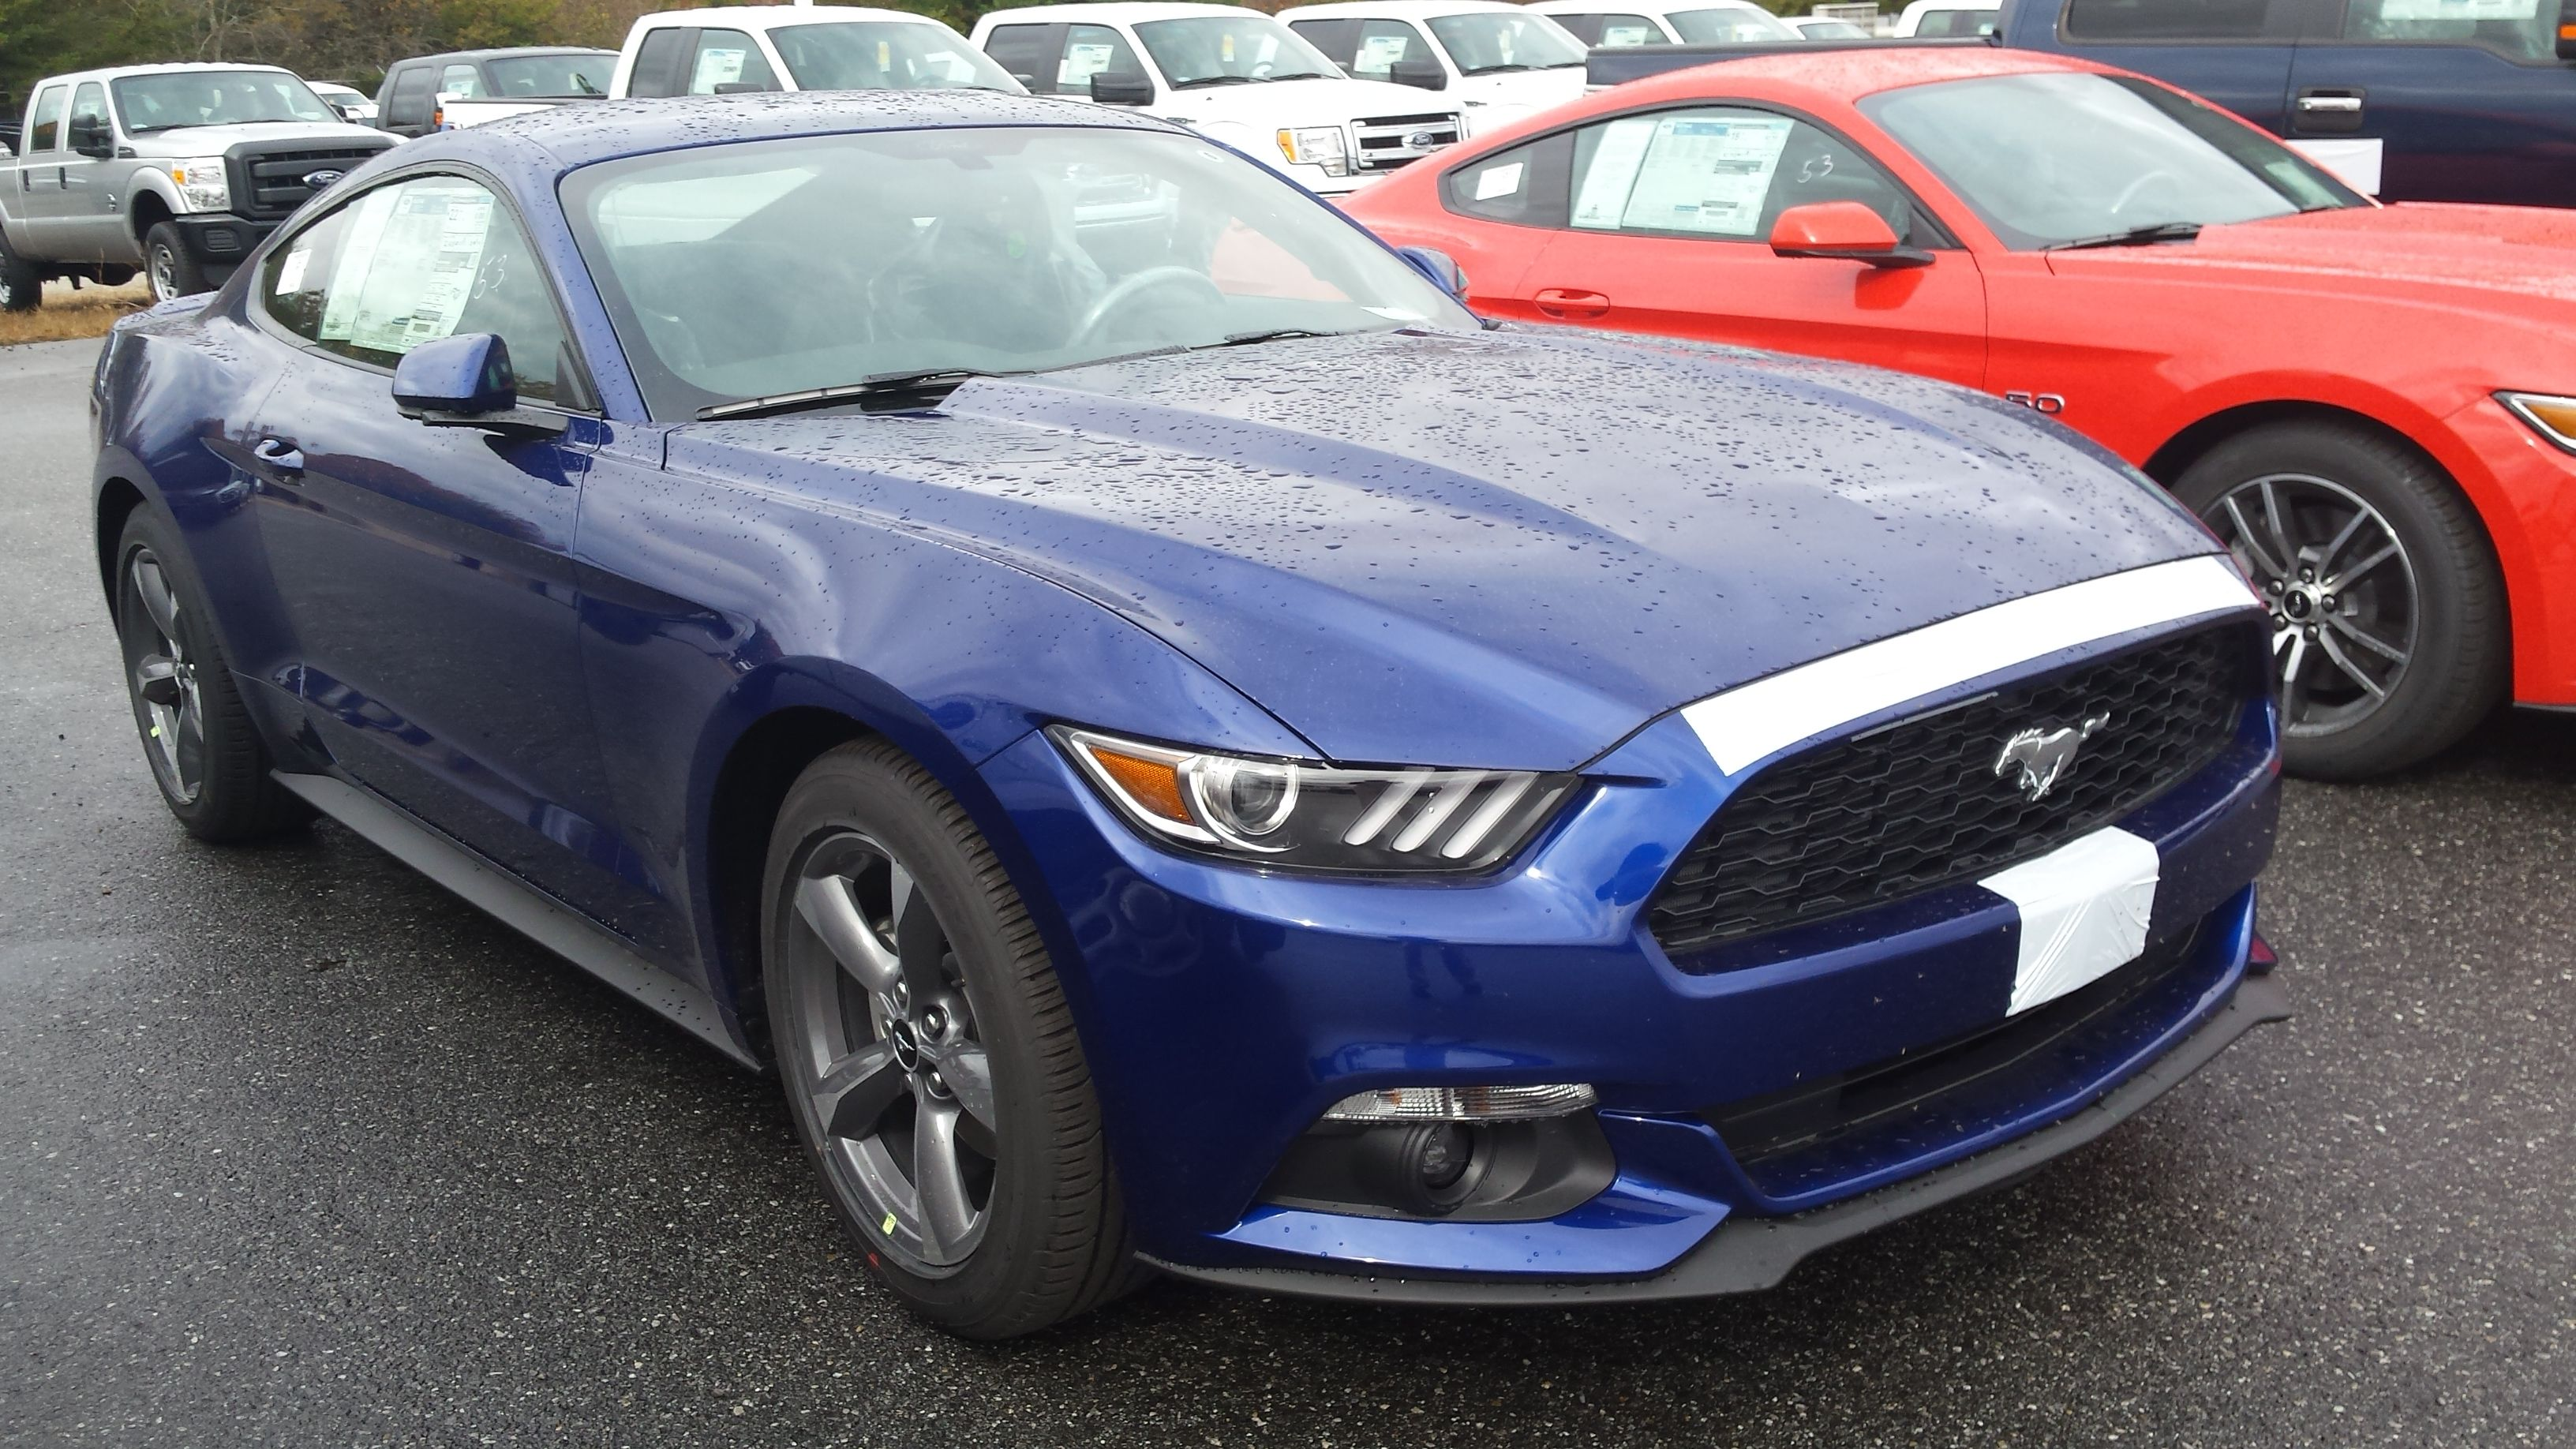 2015 ford mustang v6 in deep impact blue just came off the truck